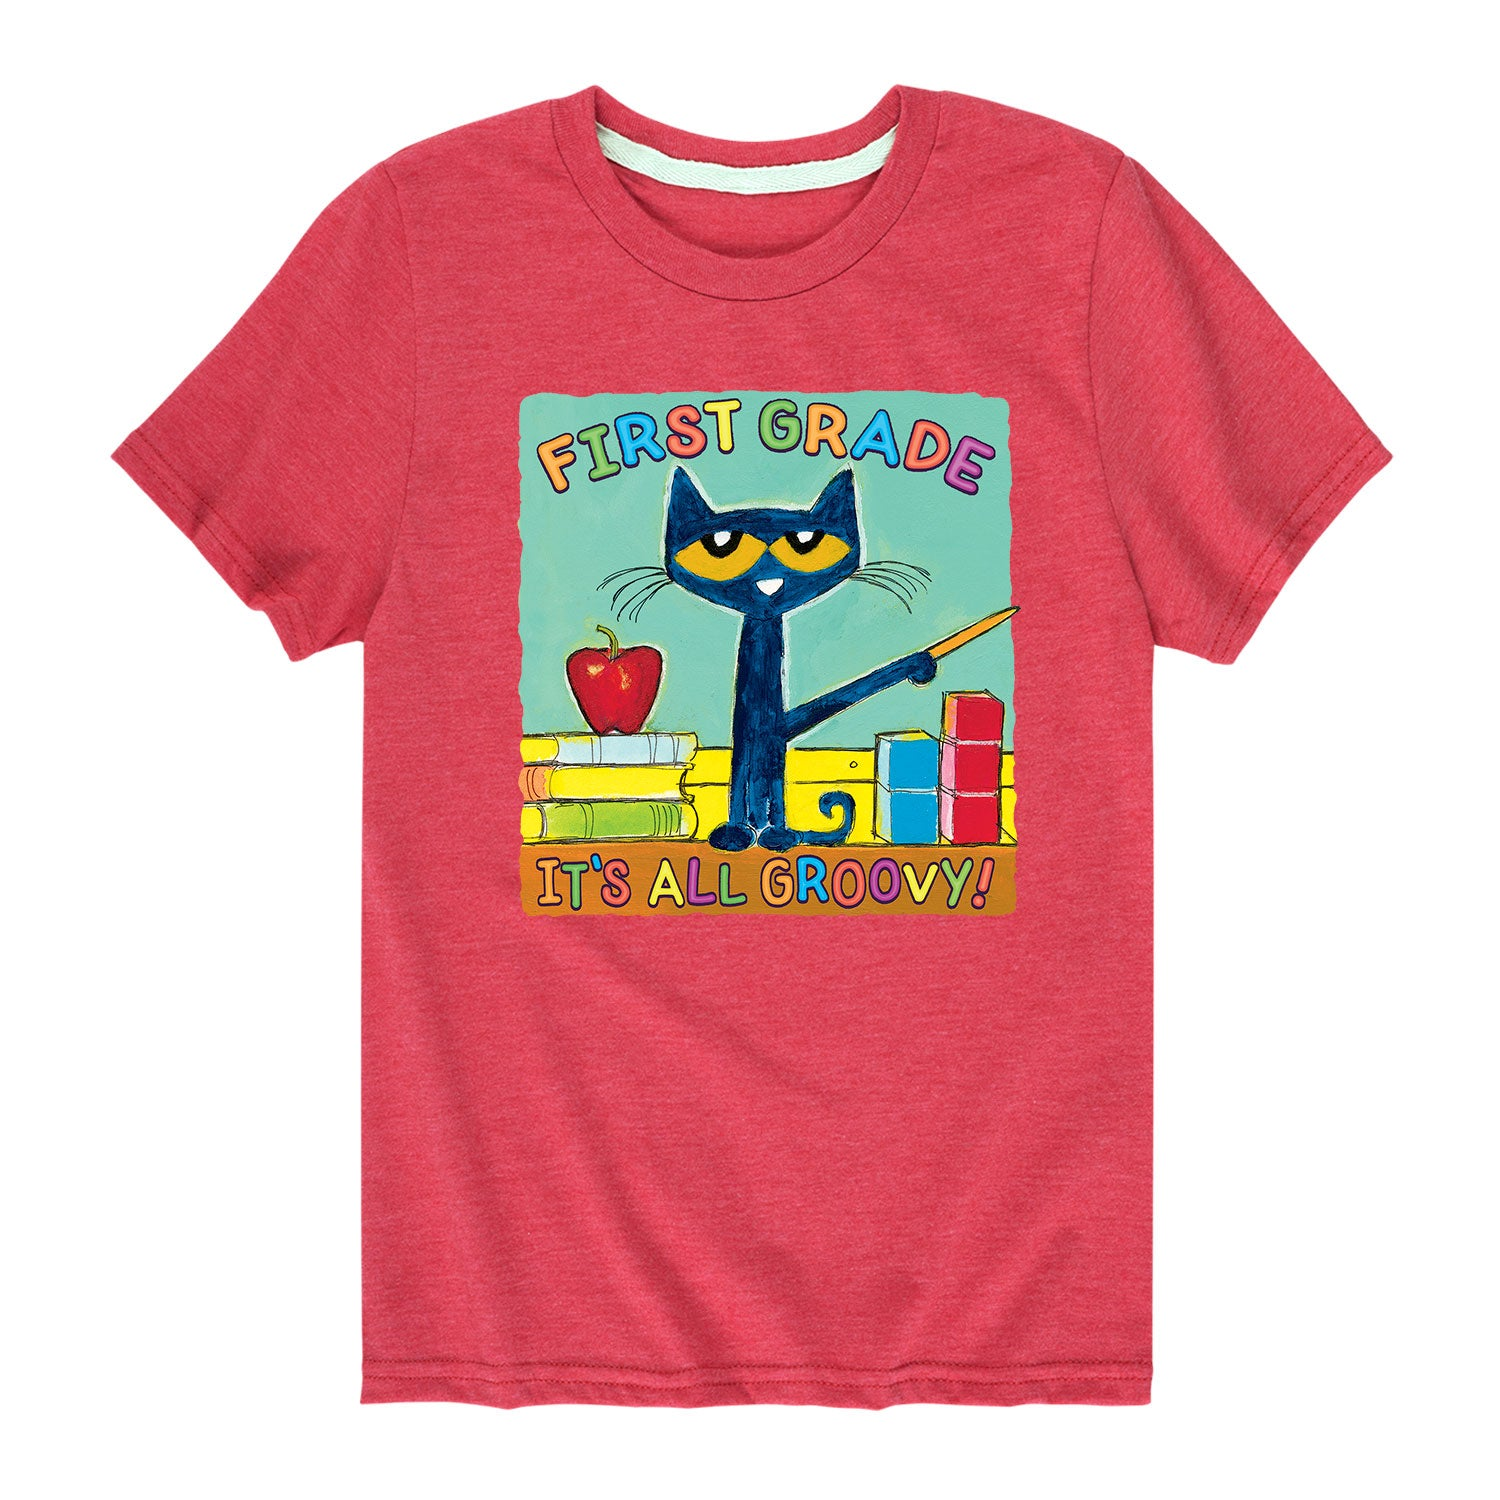 Pete The Cat First Grade It's All Groovy - Toddler Short Sleeve T-Shirt